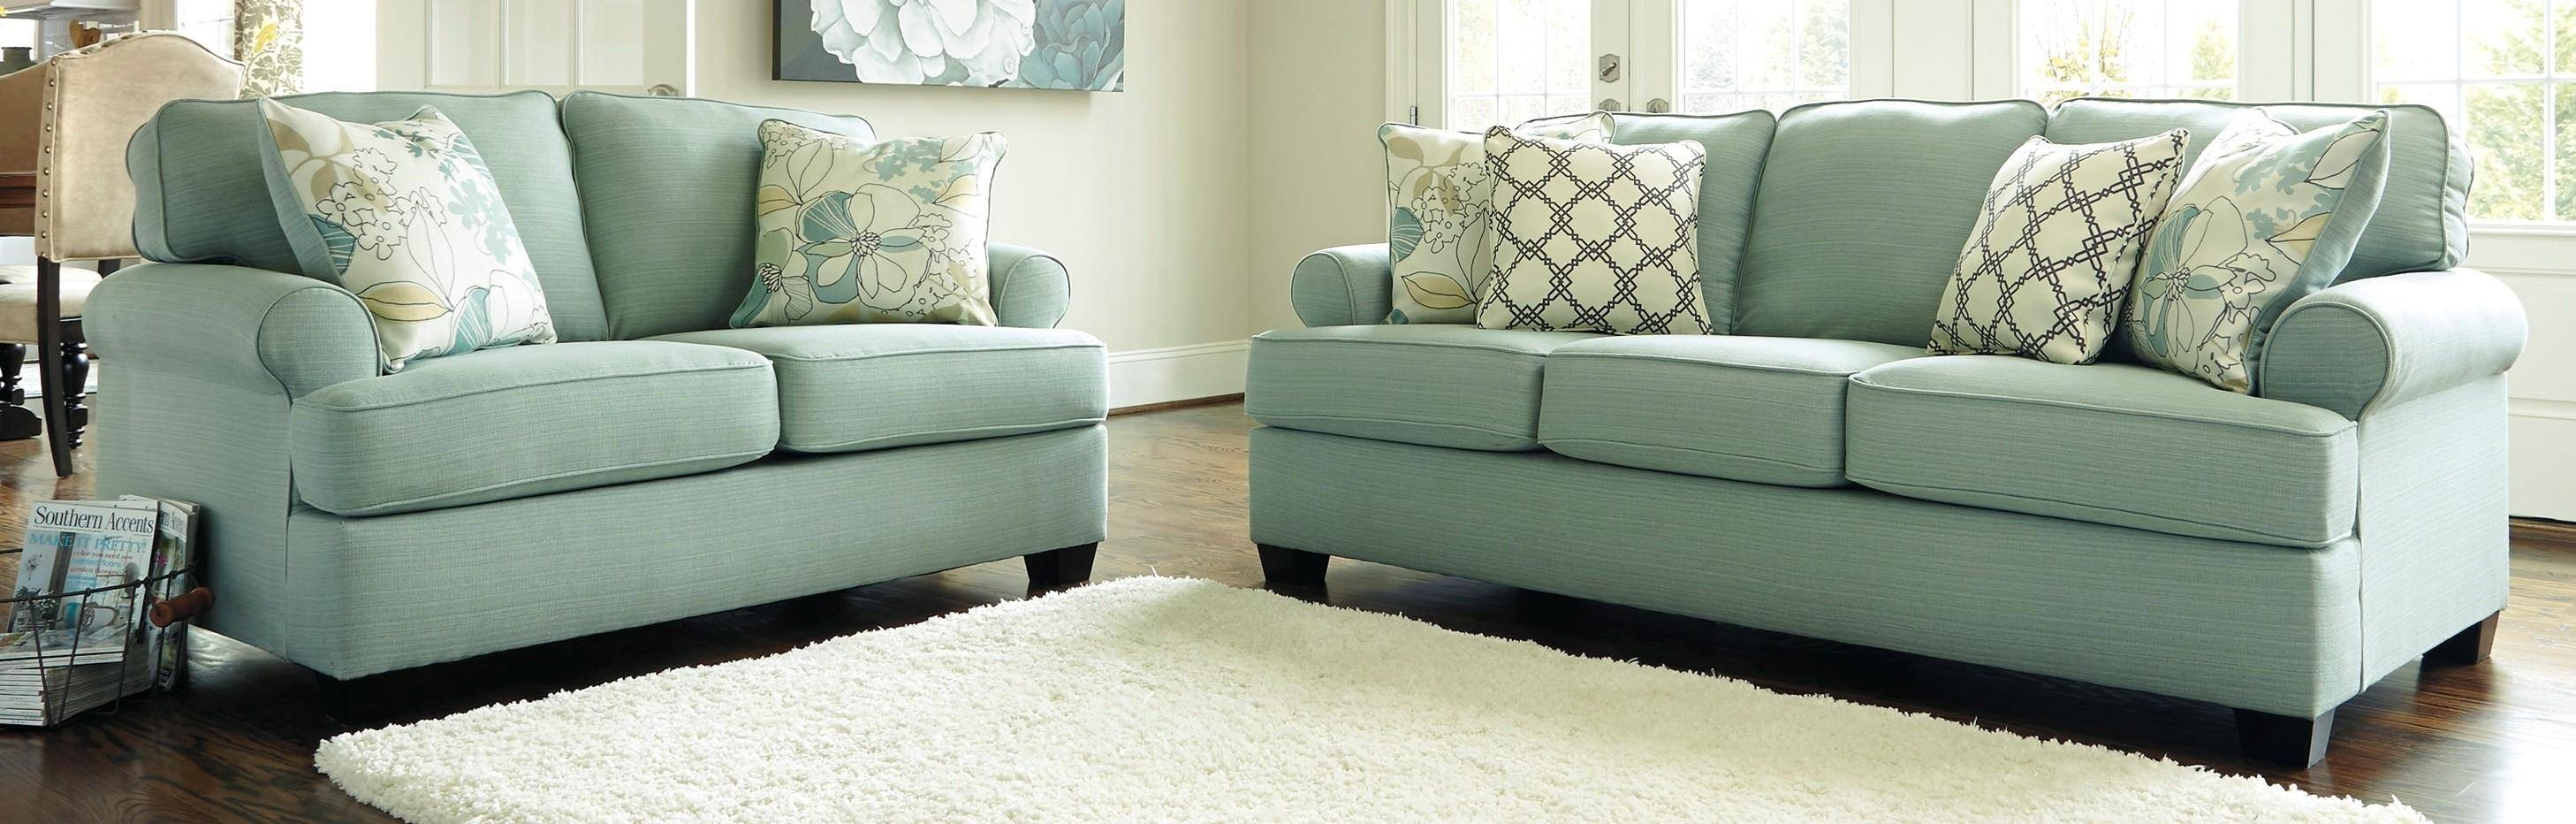 Genial Sofa Ideas: Seafoam Sofas (Explore #8 Of 20 Photos) Inside Seafoam Sofas